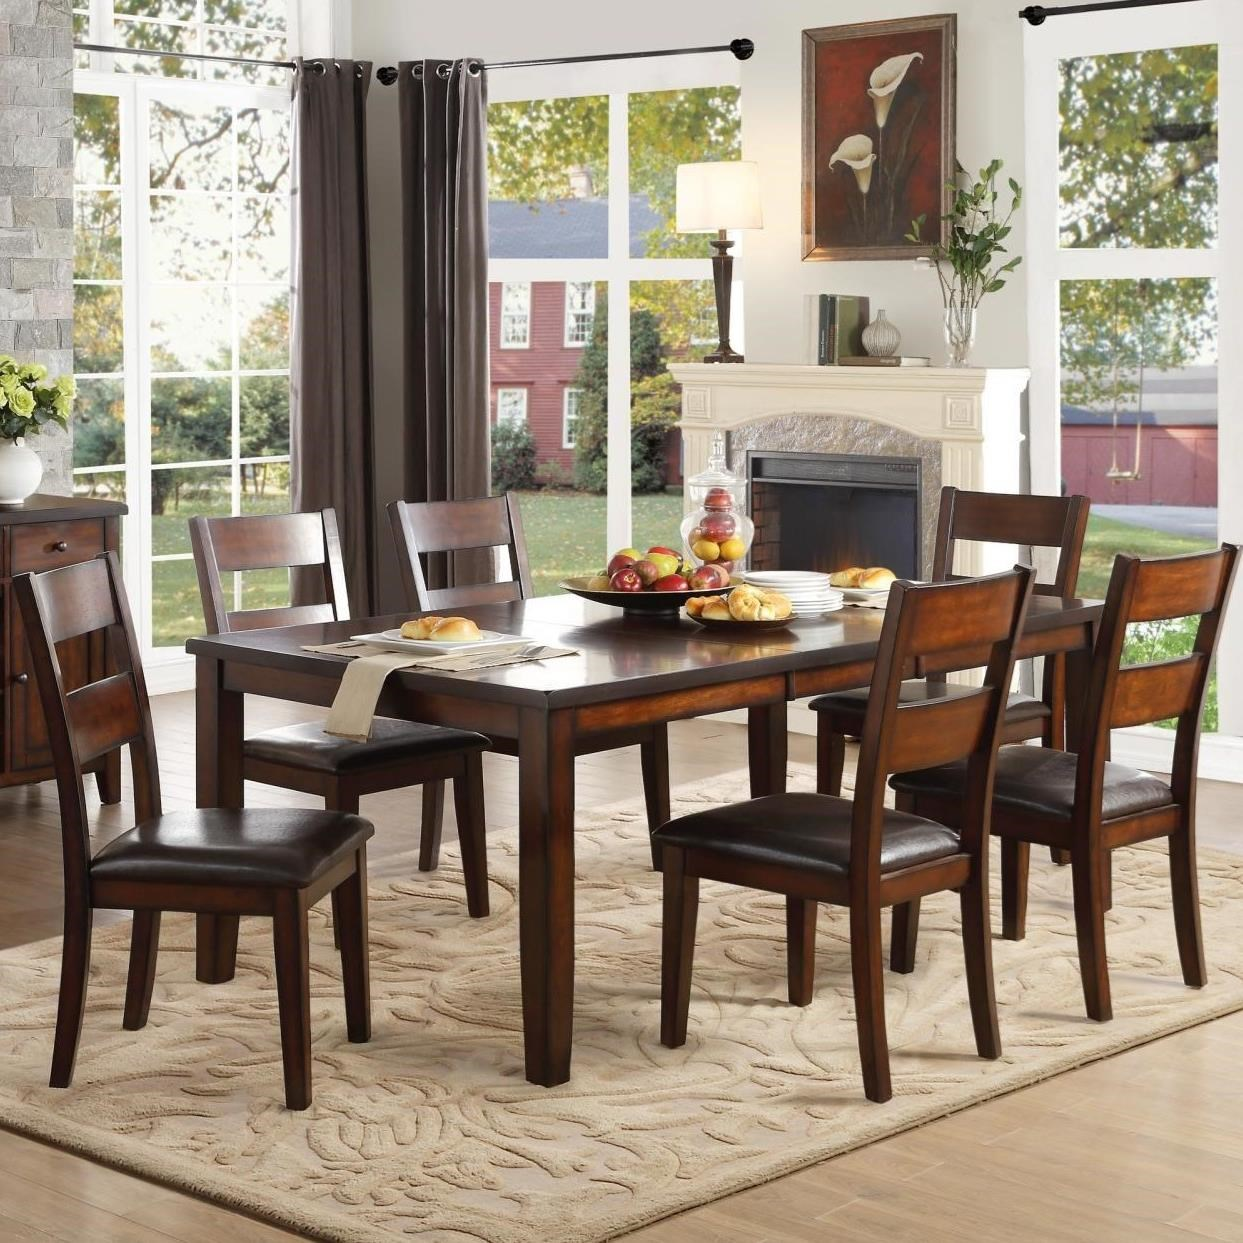 Mantello Seven Piece Dining Set by Homelegance at Beck's Furniture